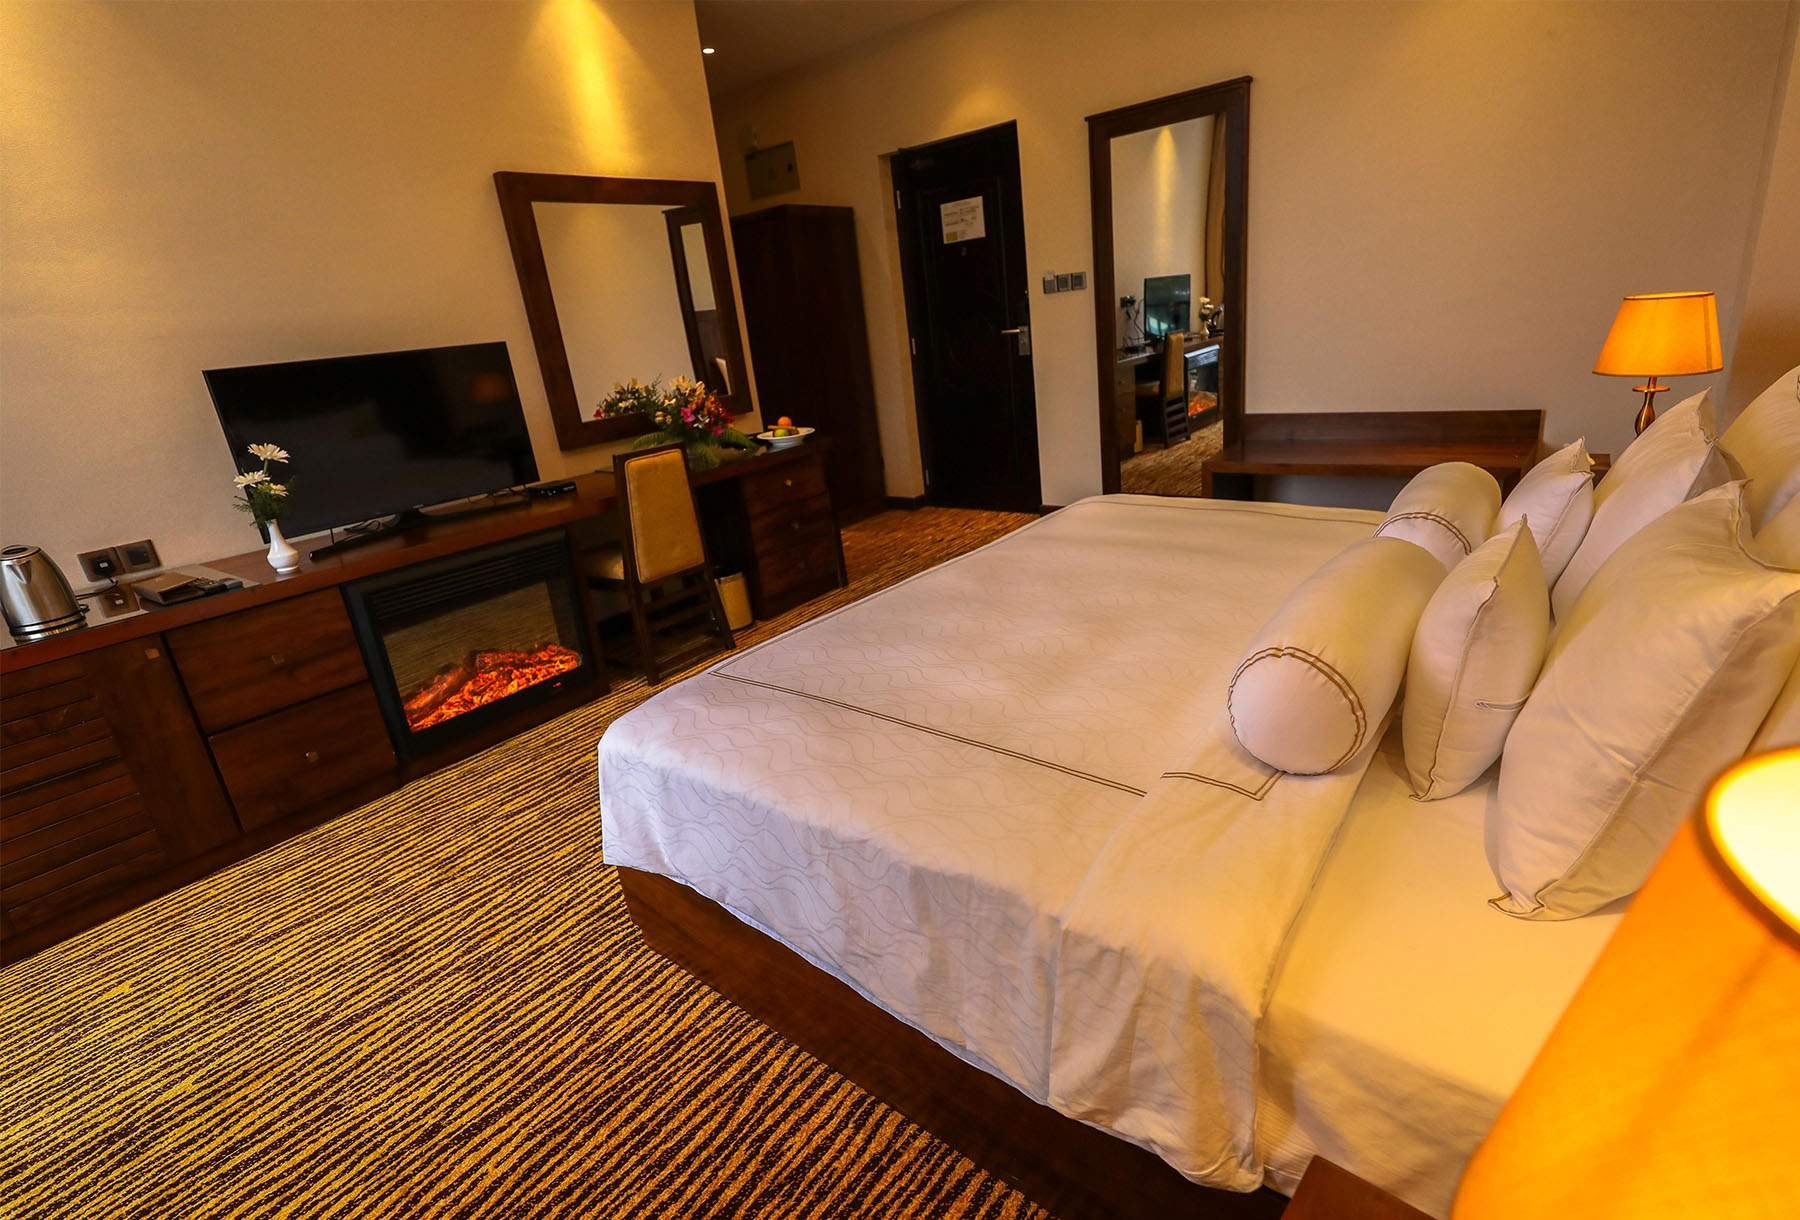 The Golden Ridge Hotel Nuwara Eliya room2.jpg